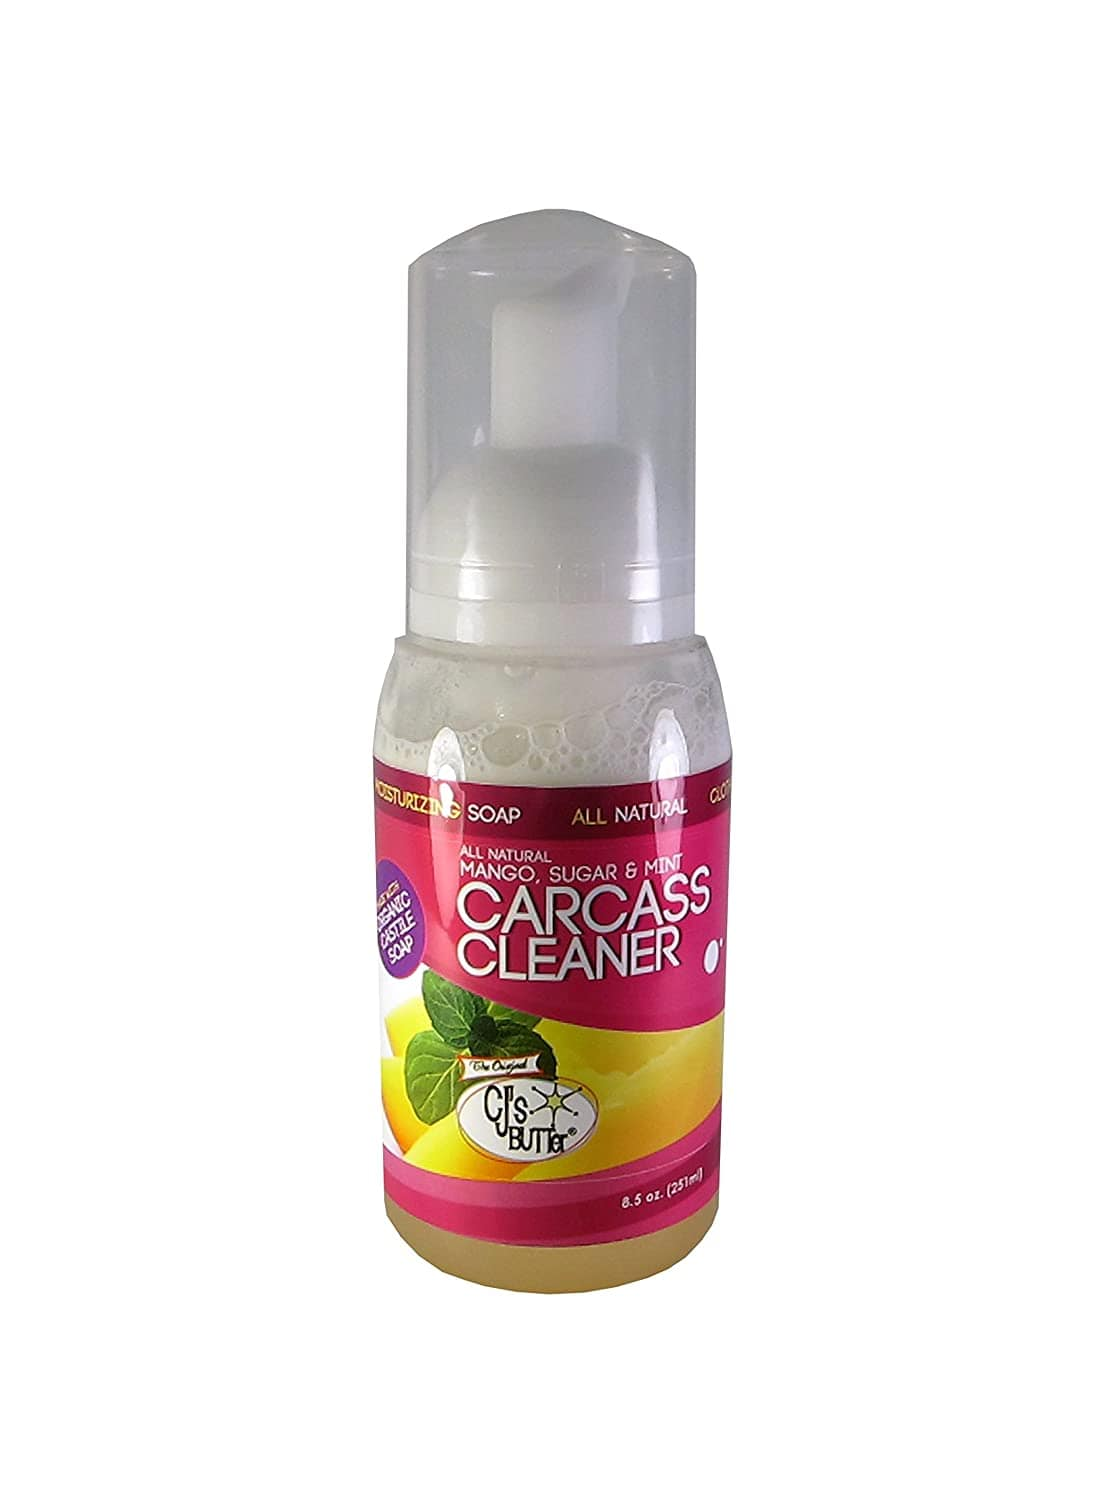 CJs Carcass Cleaner  8.5 oz-All Natural Mango, Sugar & Mint